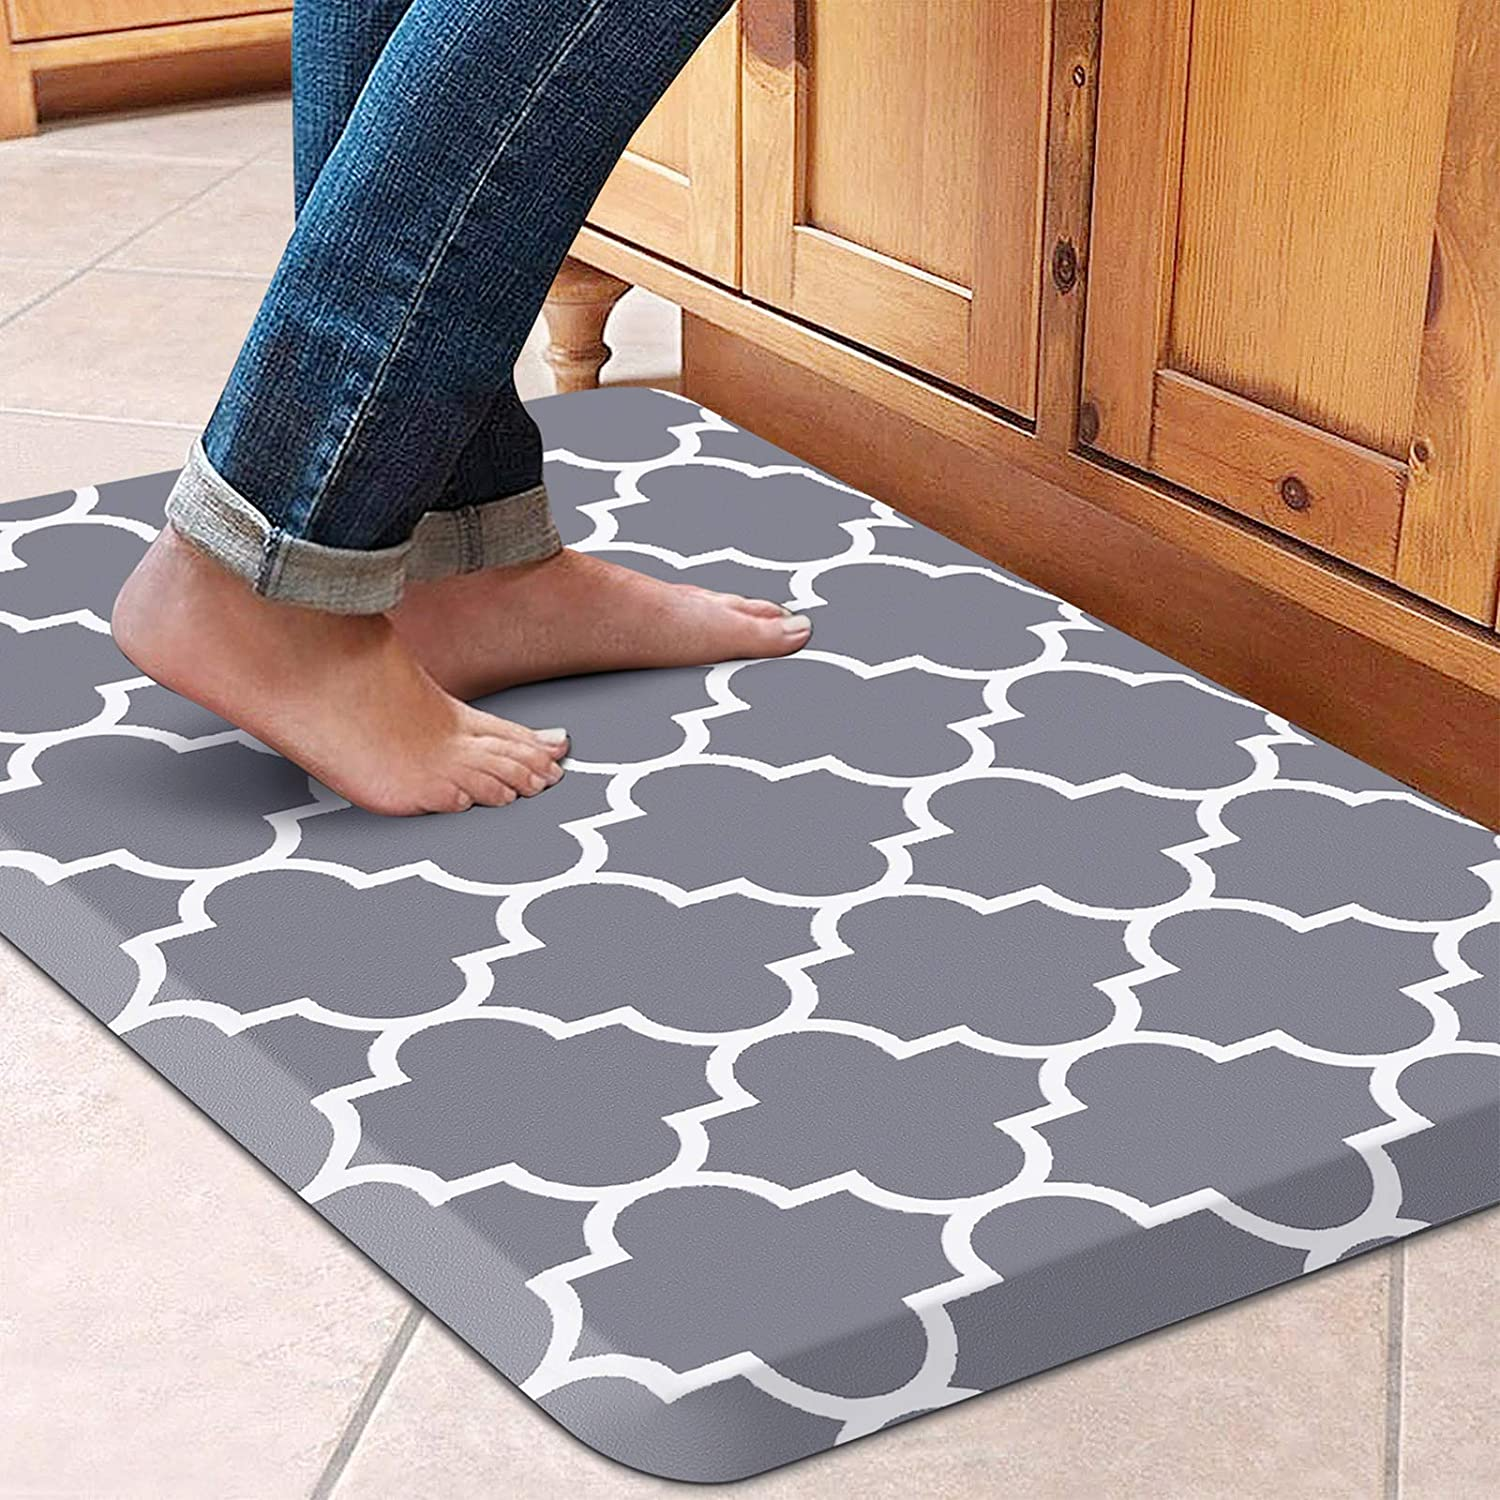 WiseLife Kitchen Mat Cushioned Anti-Fatigue Kitchen Rug,17.3